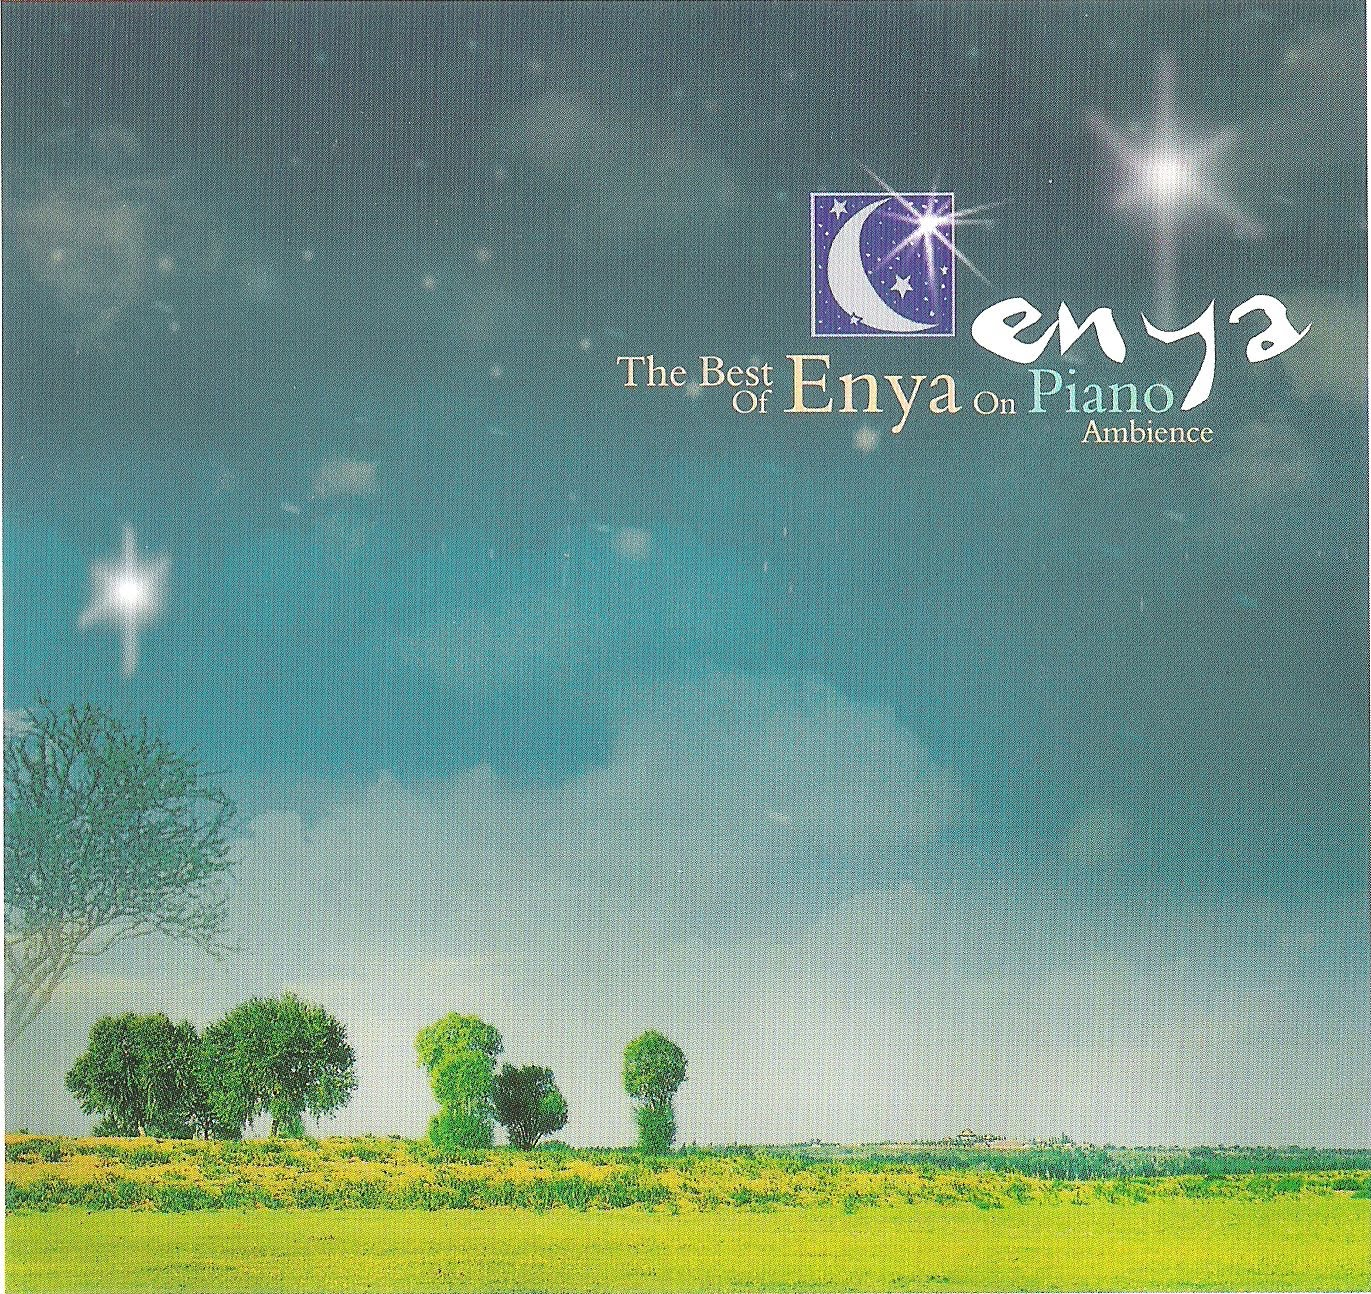 http://2.bp.blogspot.com/_XOTJ5x6oyfI/TH3DQeQV4YI/AAAAAAAAGNY/GBjMYFRMLbo/s1600/Enya+-+The+Best+Of+Enya+On+Piano+%282007%29+Cover.jpg